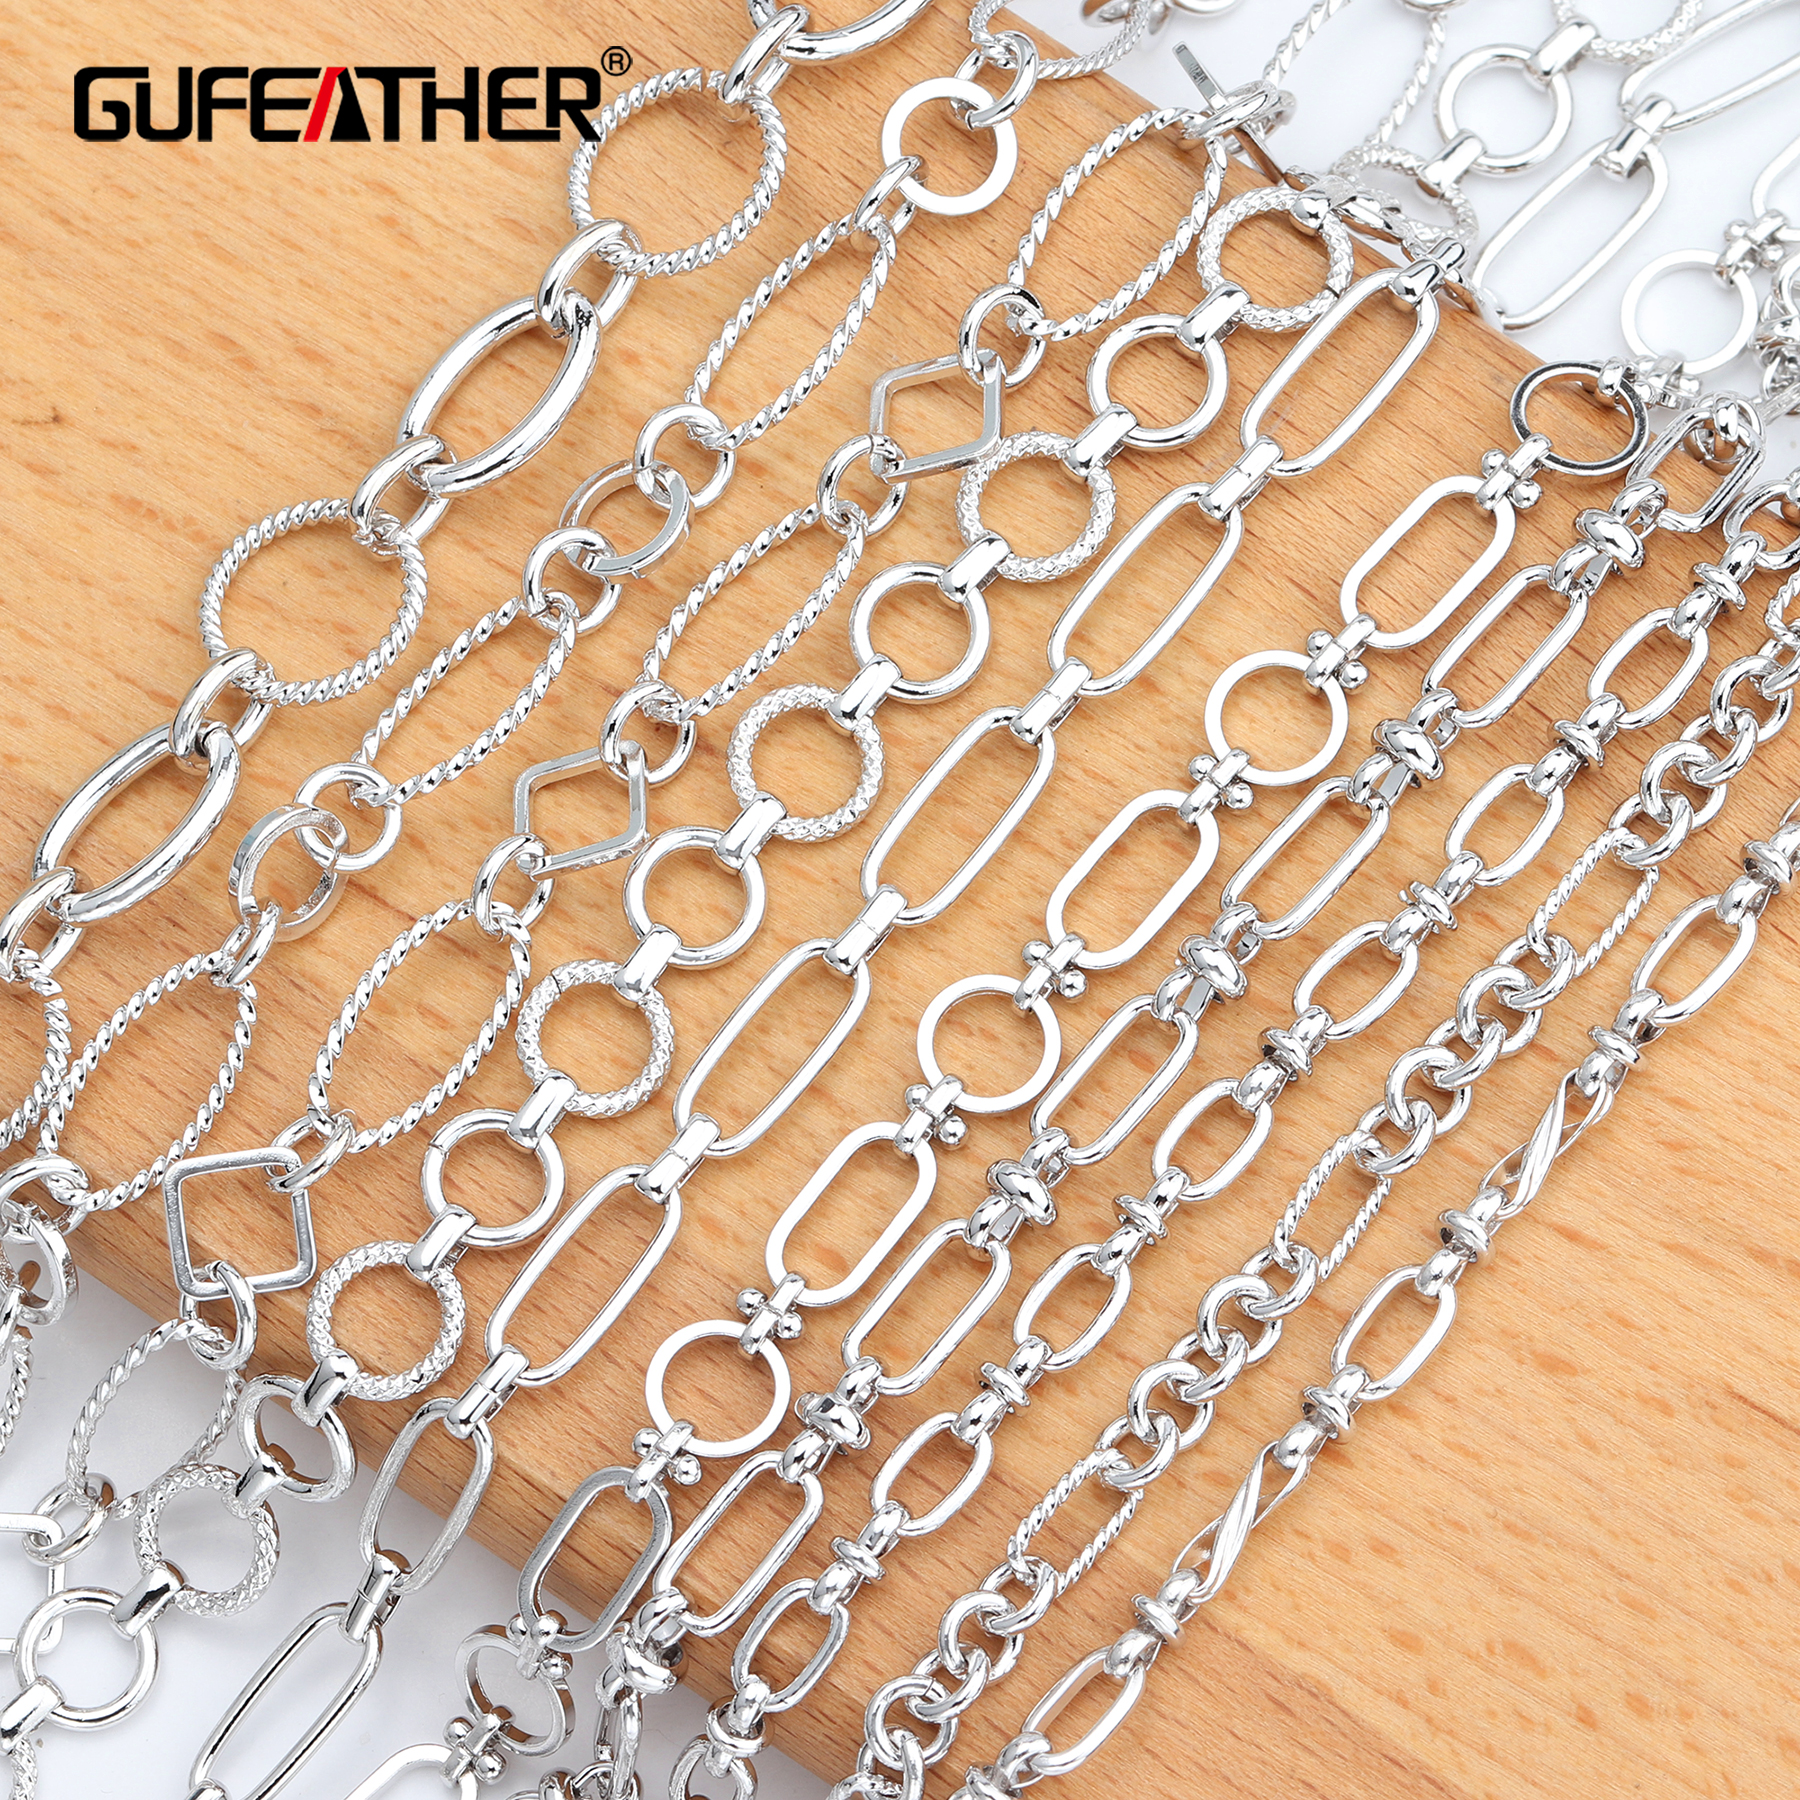 GUFEATHER C61,jewelry Accessories,copper Chain,platinum Plated,environmental Protection,diy Chain Necklace,jewelry Making,1m/lot